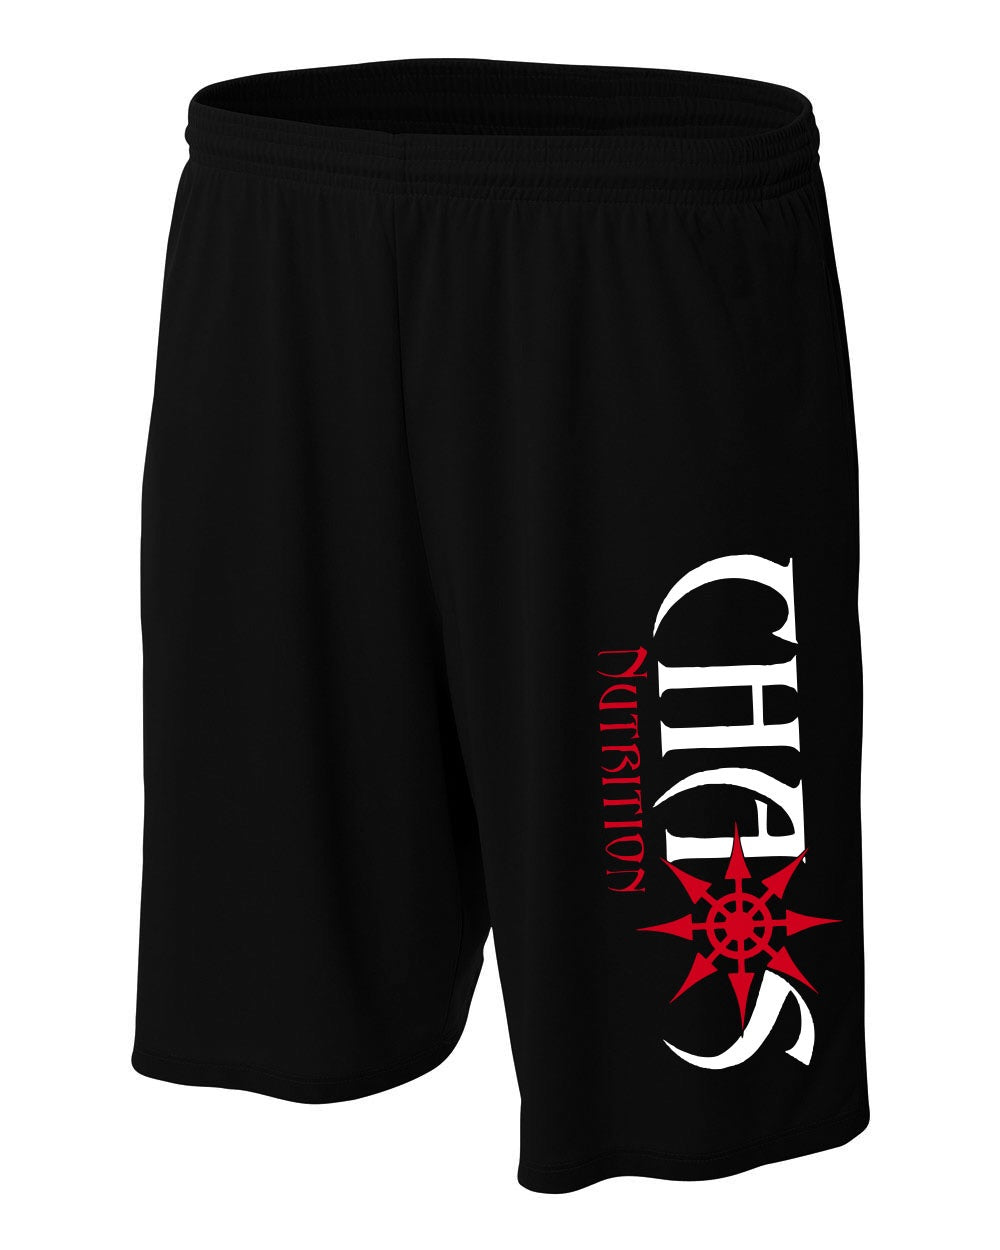 CHAOS NUTRITION - SHORTS - BLACK #70